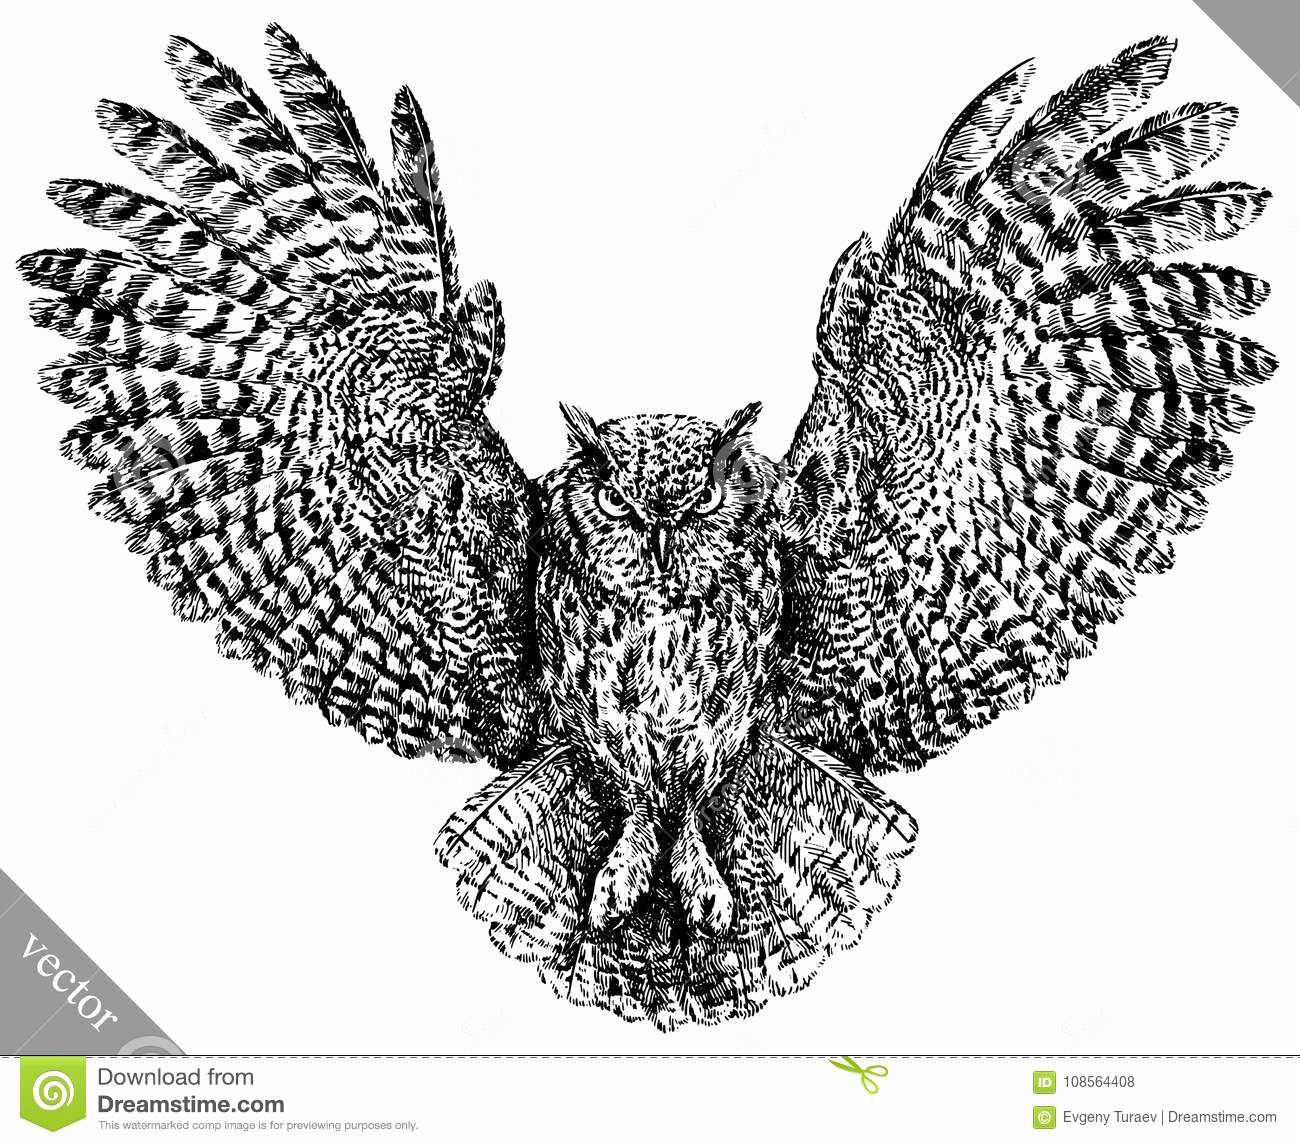 Black and White Illustration Unique Black and White Engrave isolated Owl Vector Illustration Stock Vector Illustration Of Black